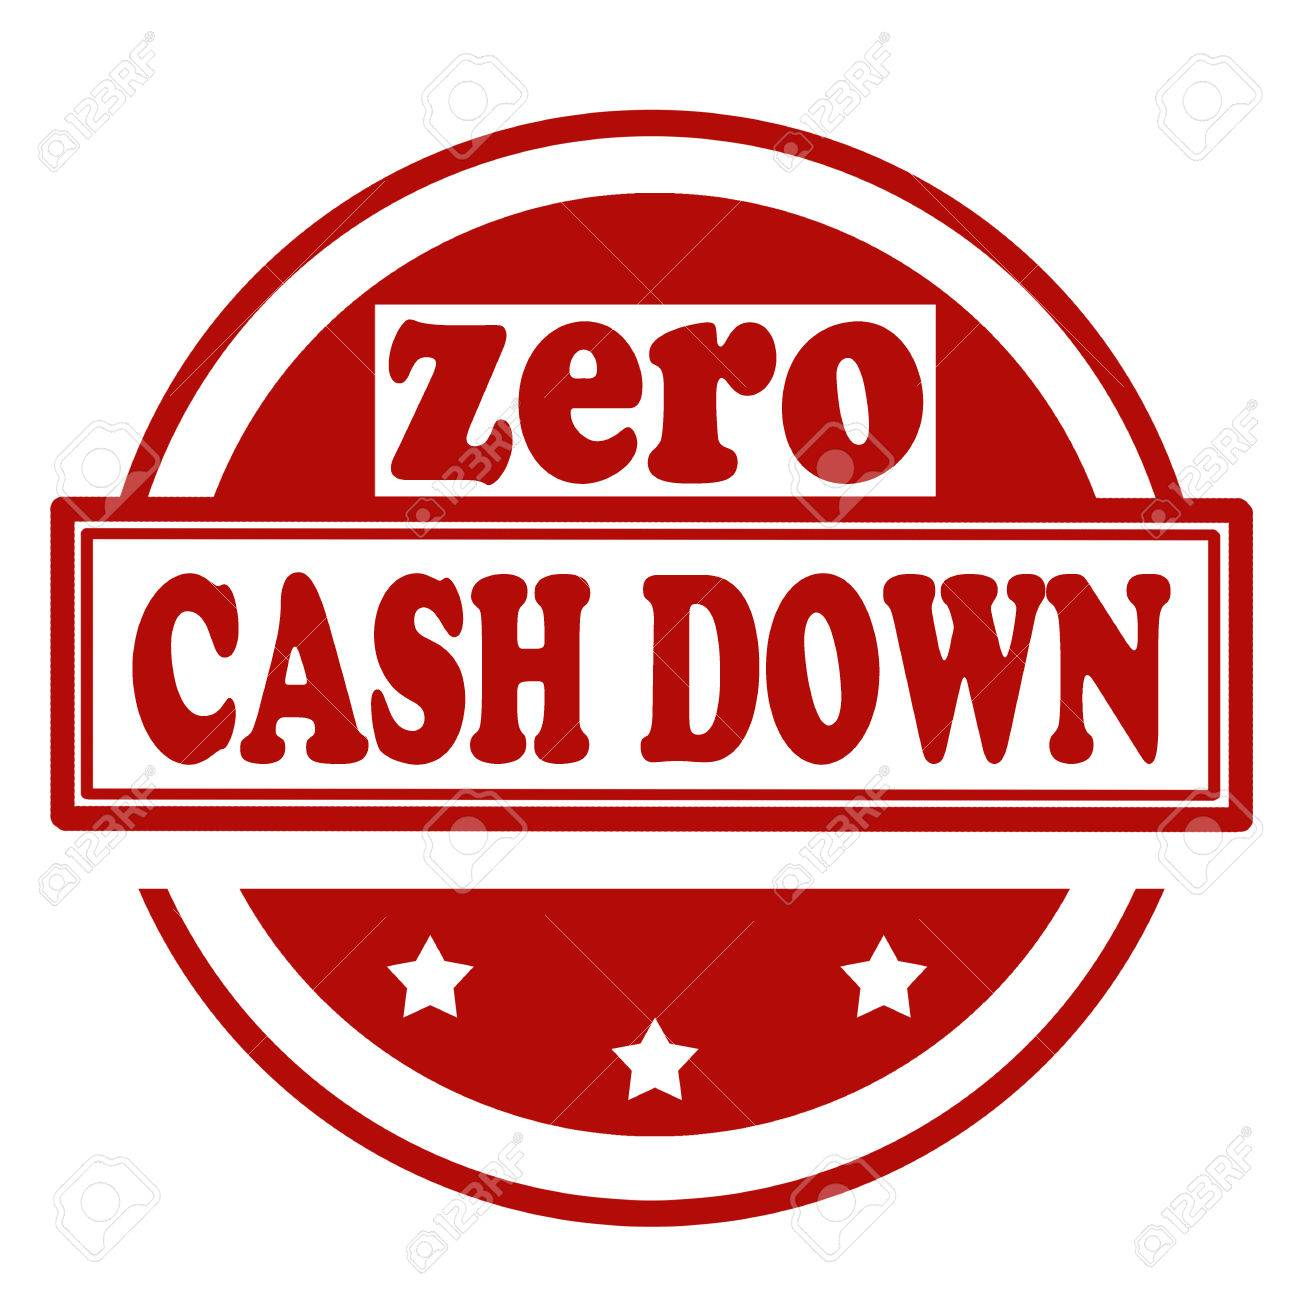 Red stamp with text Zero Cash Down - 59037367